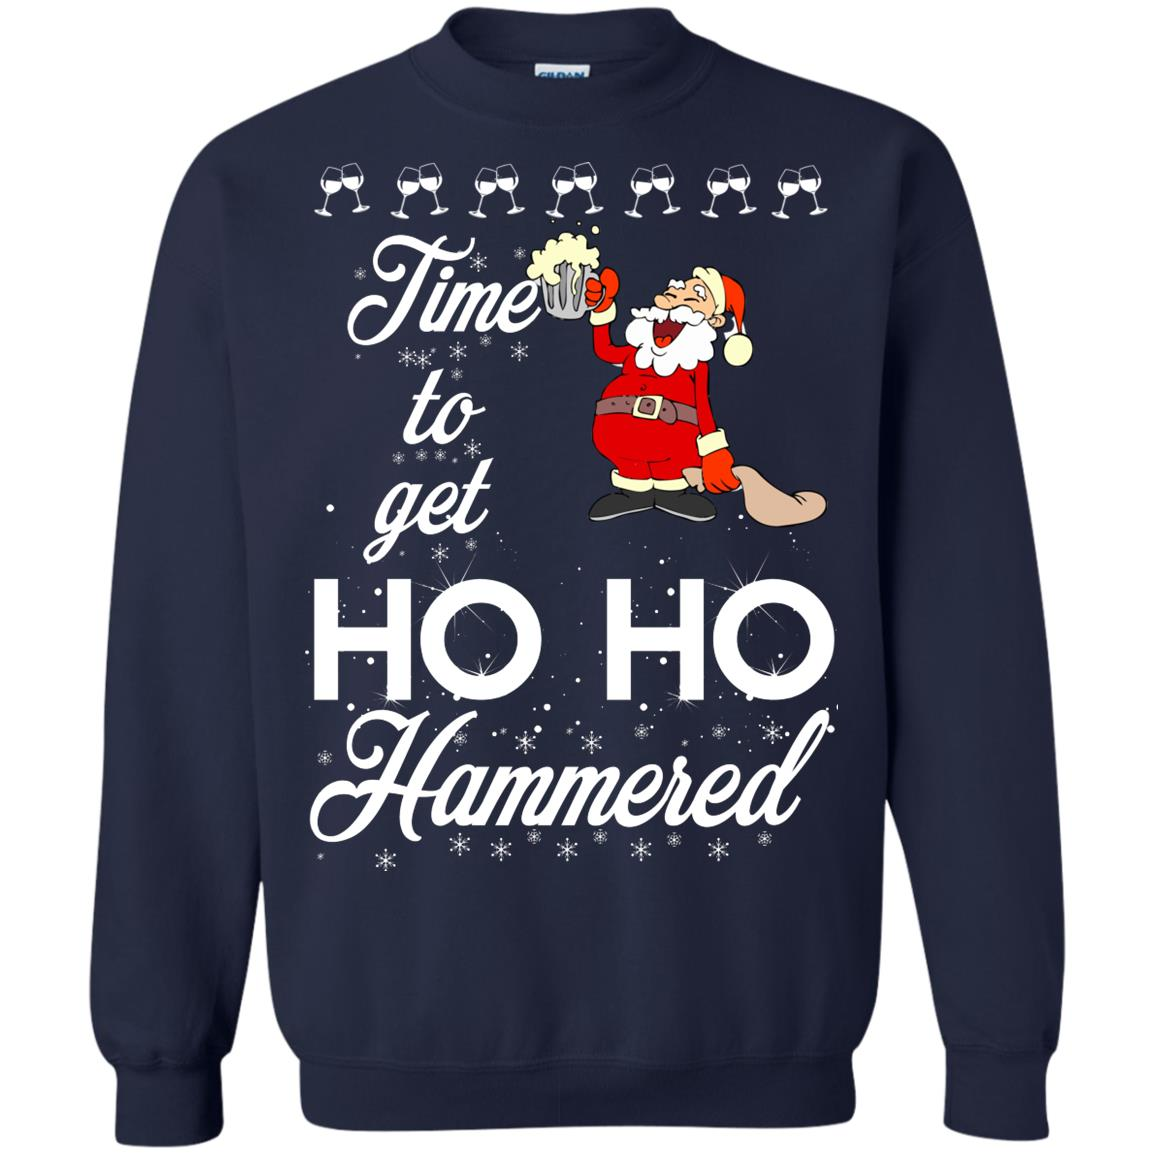 image 1655 - Time To Get Ho Ho Hammered Christmas Sweater, Shirt